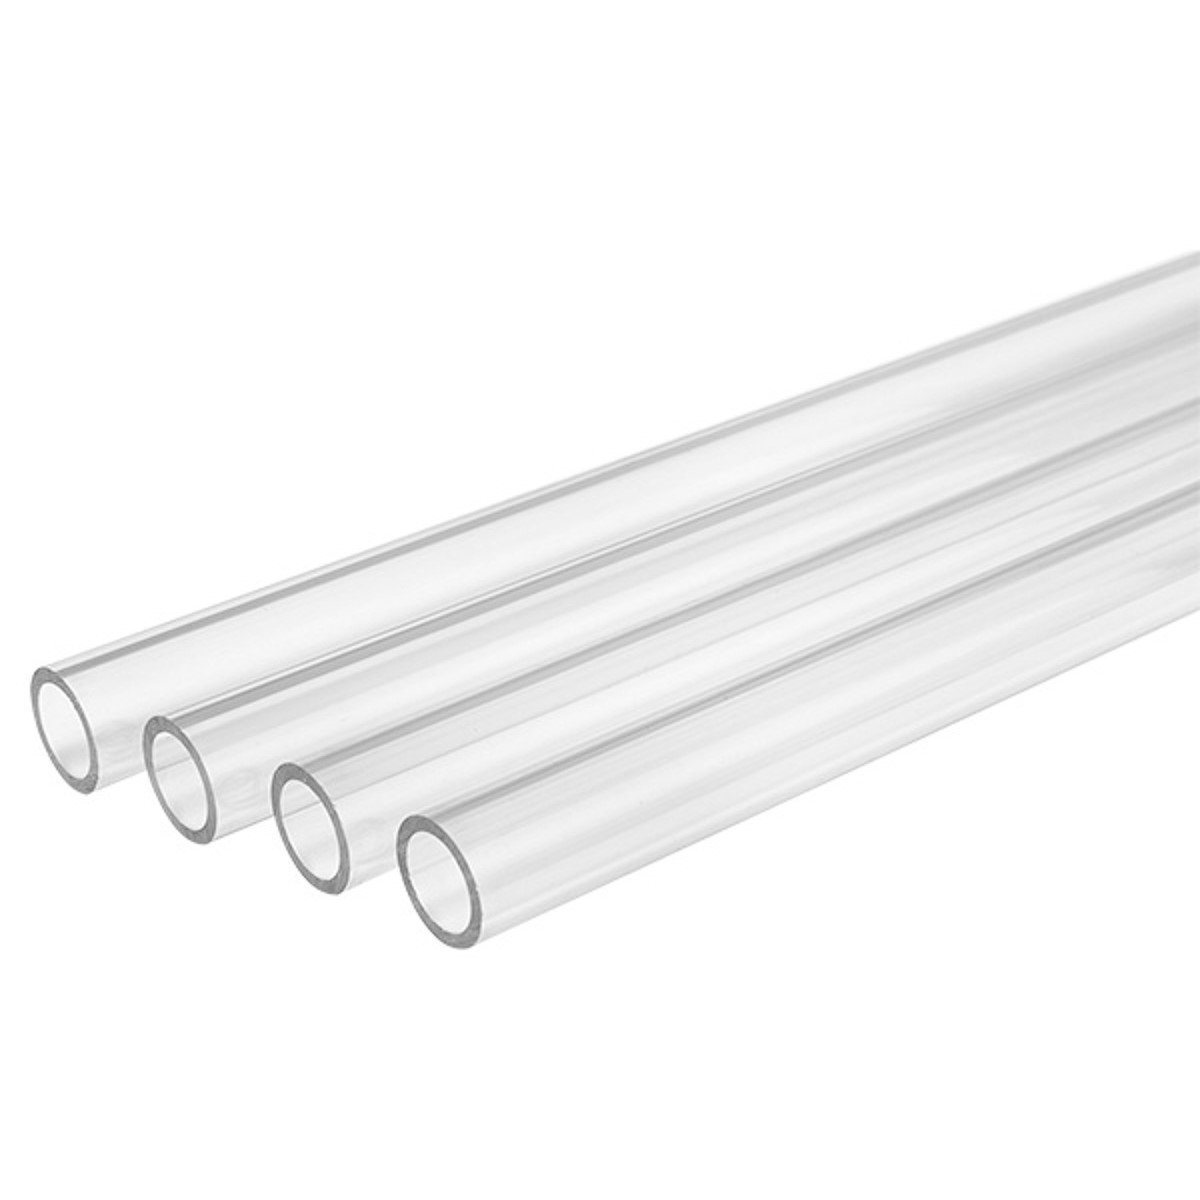 Barrow PETG Tubing (Normal Temperature), 8mm ID, 12mm OD, 500mm length, Clear, 4-pack